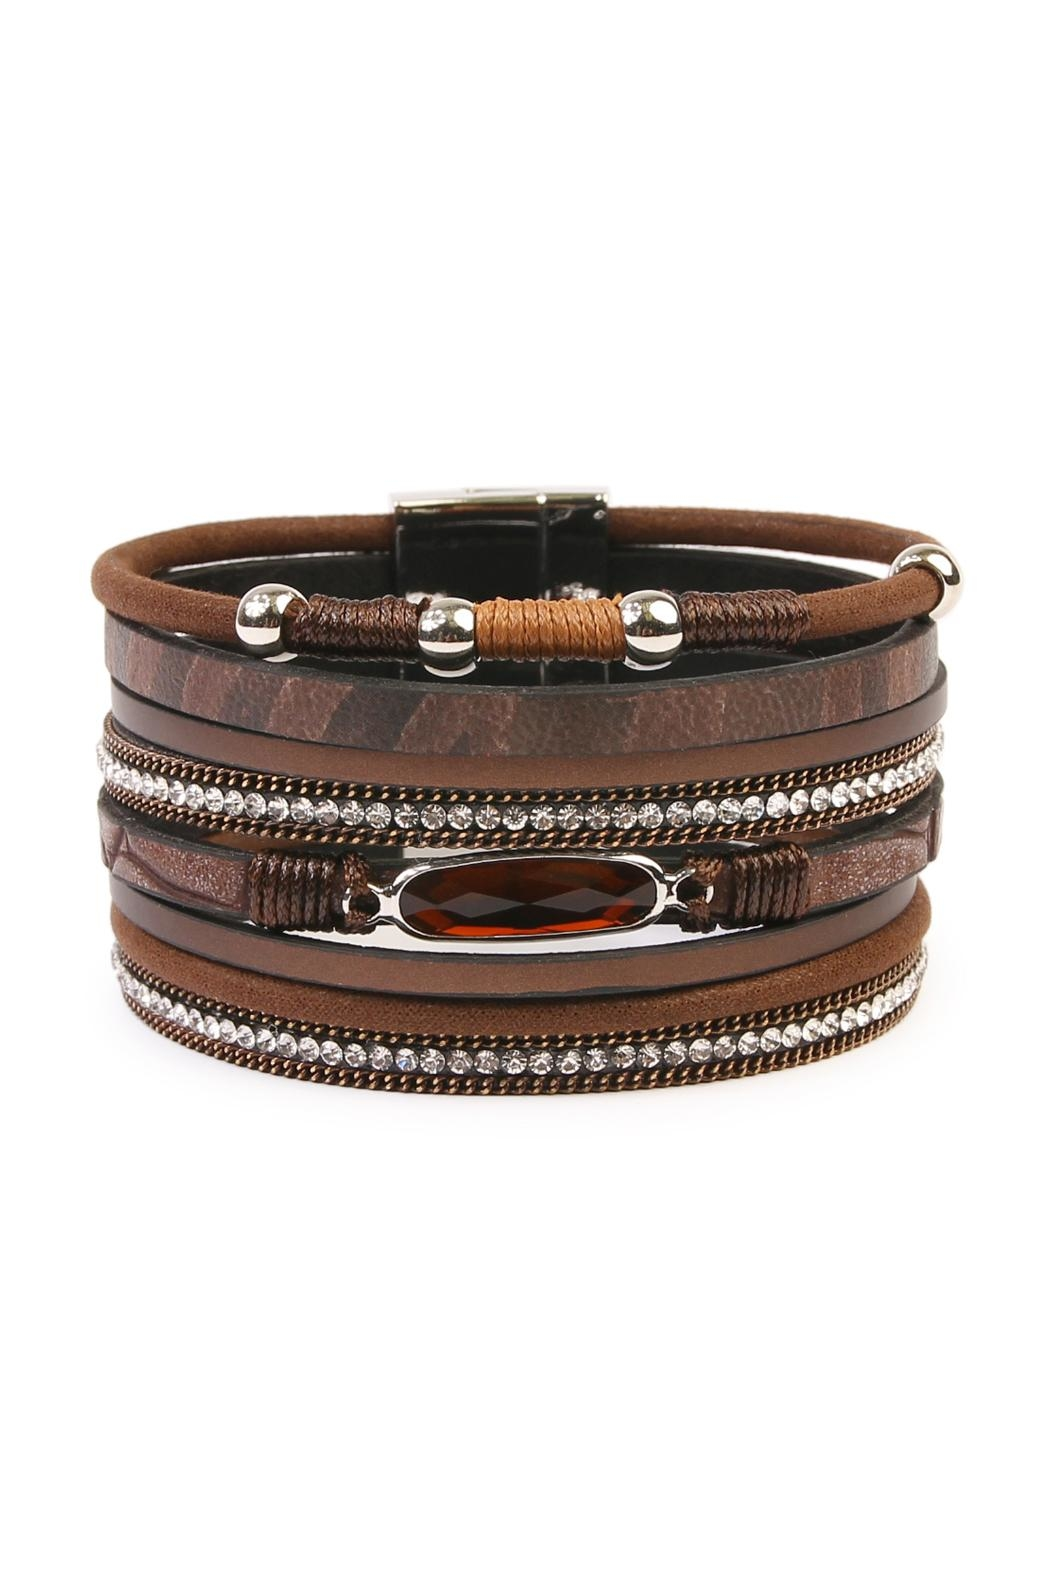 Black leather pearl wrap around fashion bracelet H&M - Fashion and quality at the best price H&M US